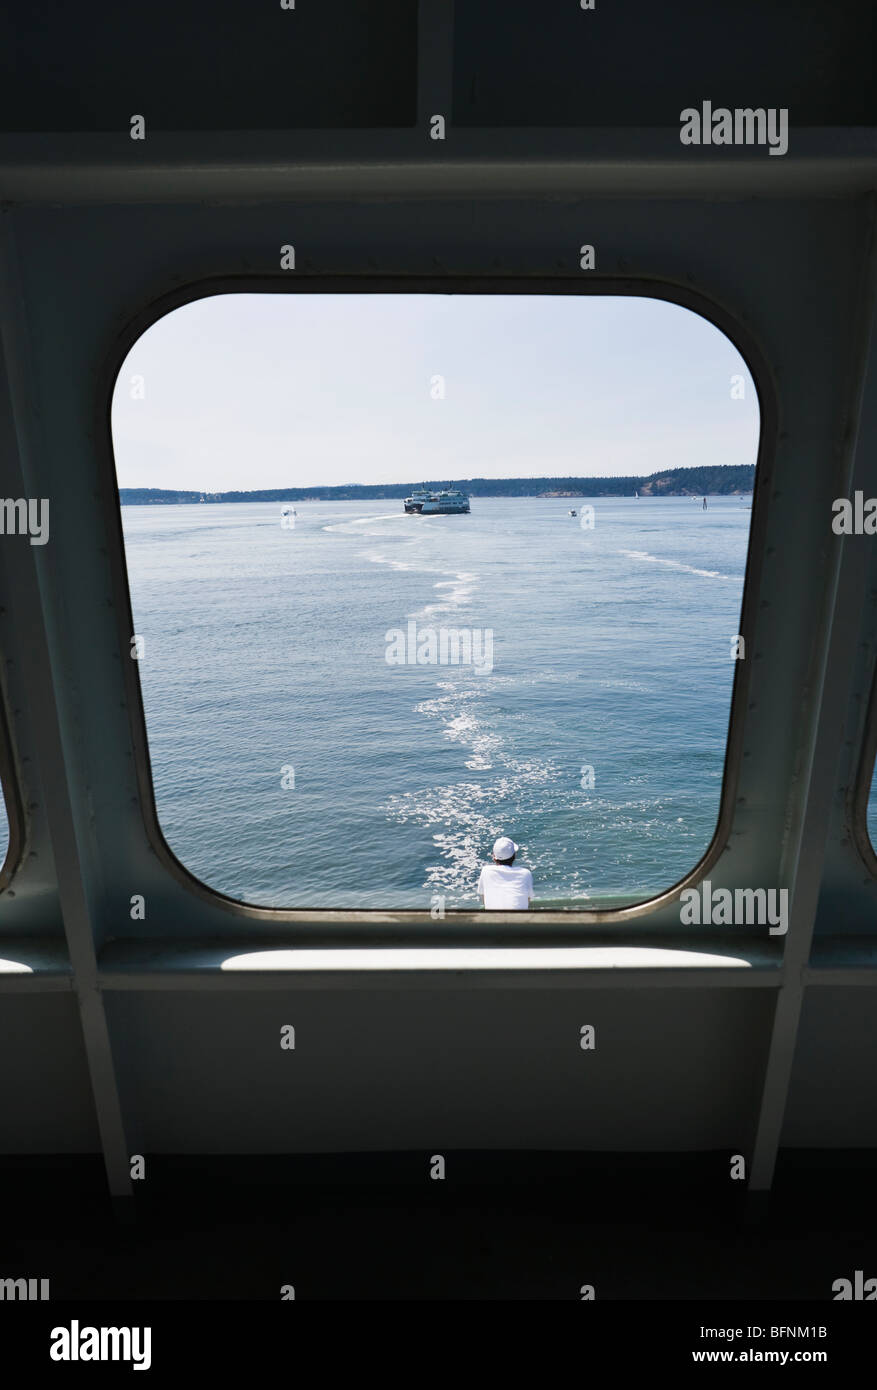 Looking out a window on a Washington State ferry in the San Juan Islands, Washington, USA. - Stock Image